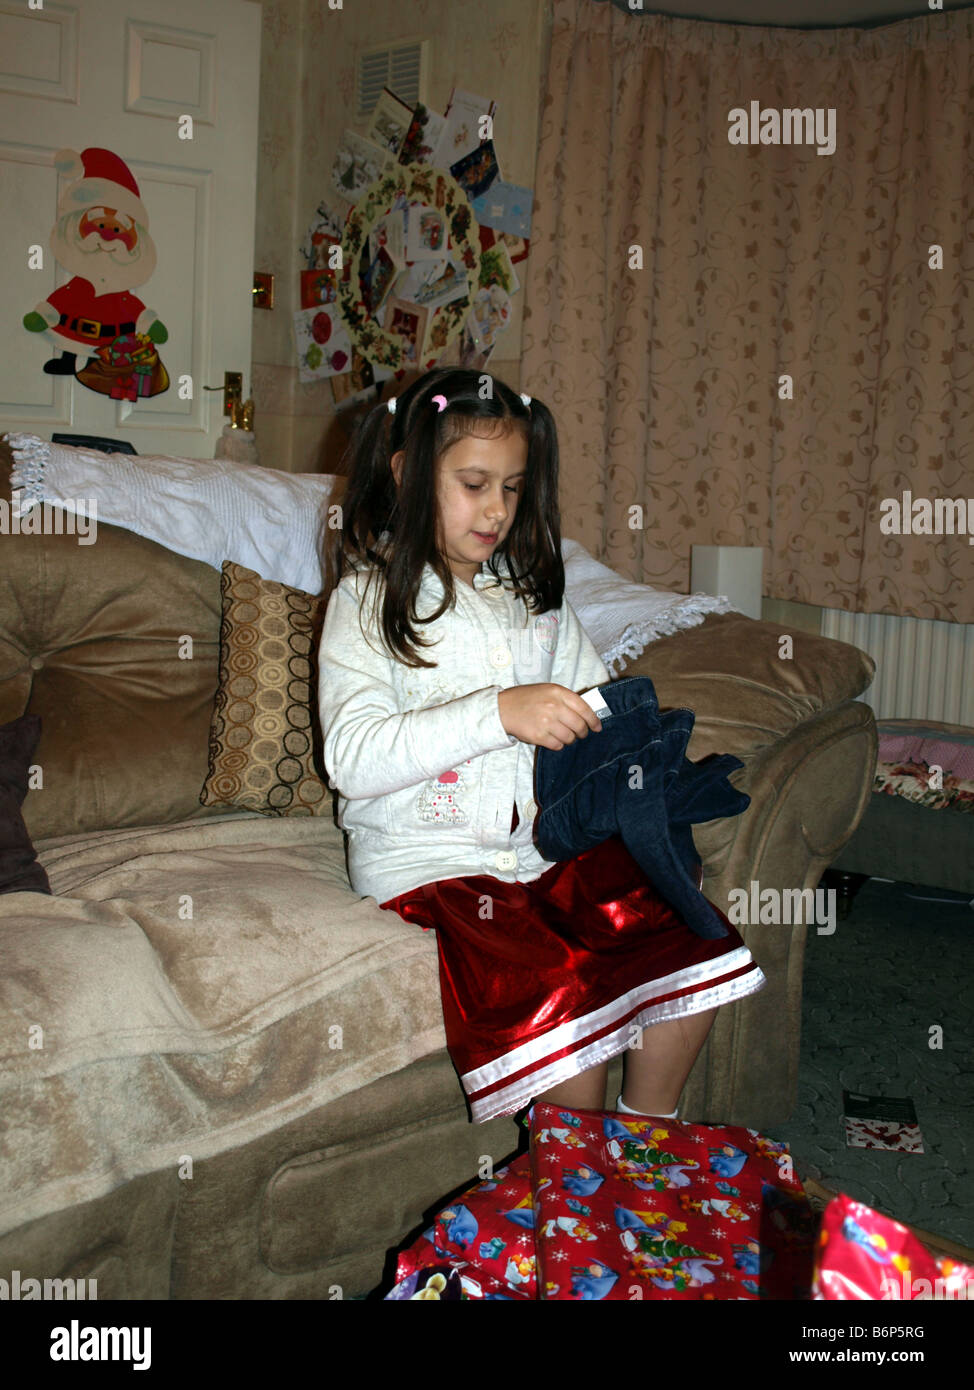 An 8 year old girl opening presents on Christmas morning Stock Photo ...